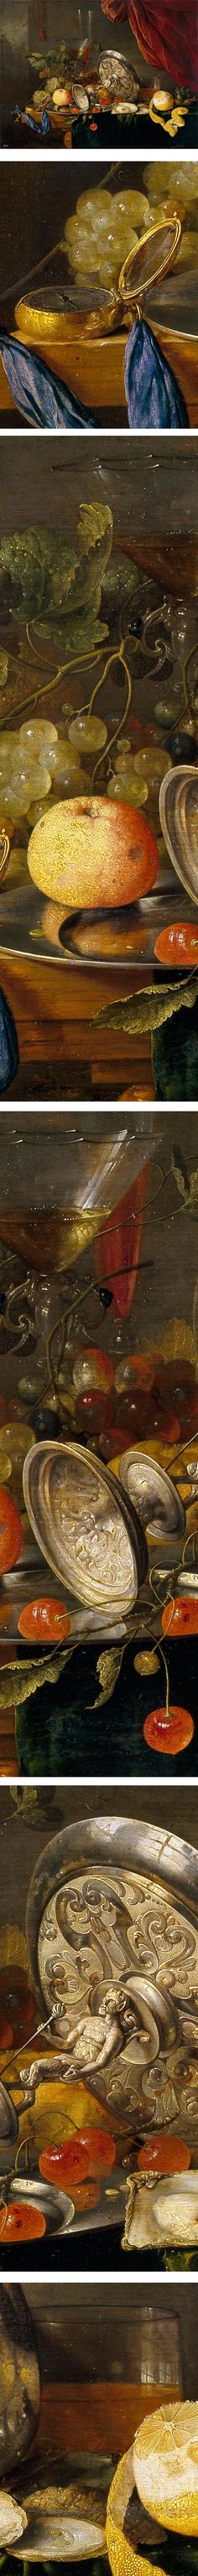 Eye Candy for Today: Jan Davidsz de Heem still life